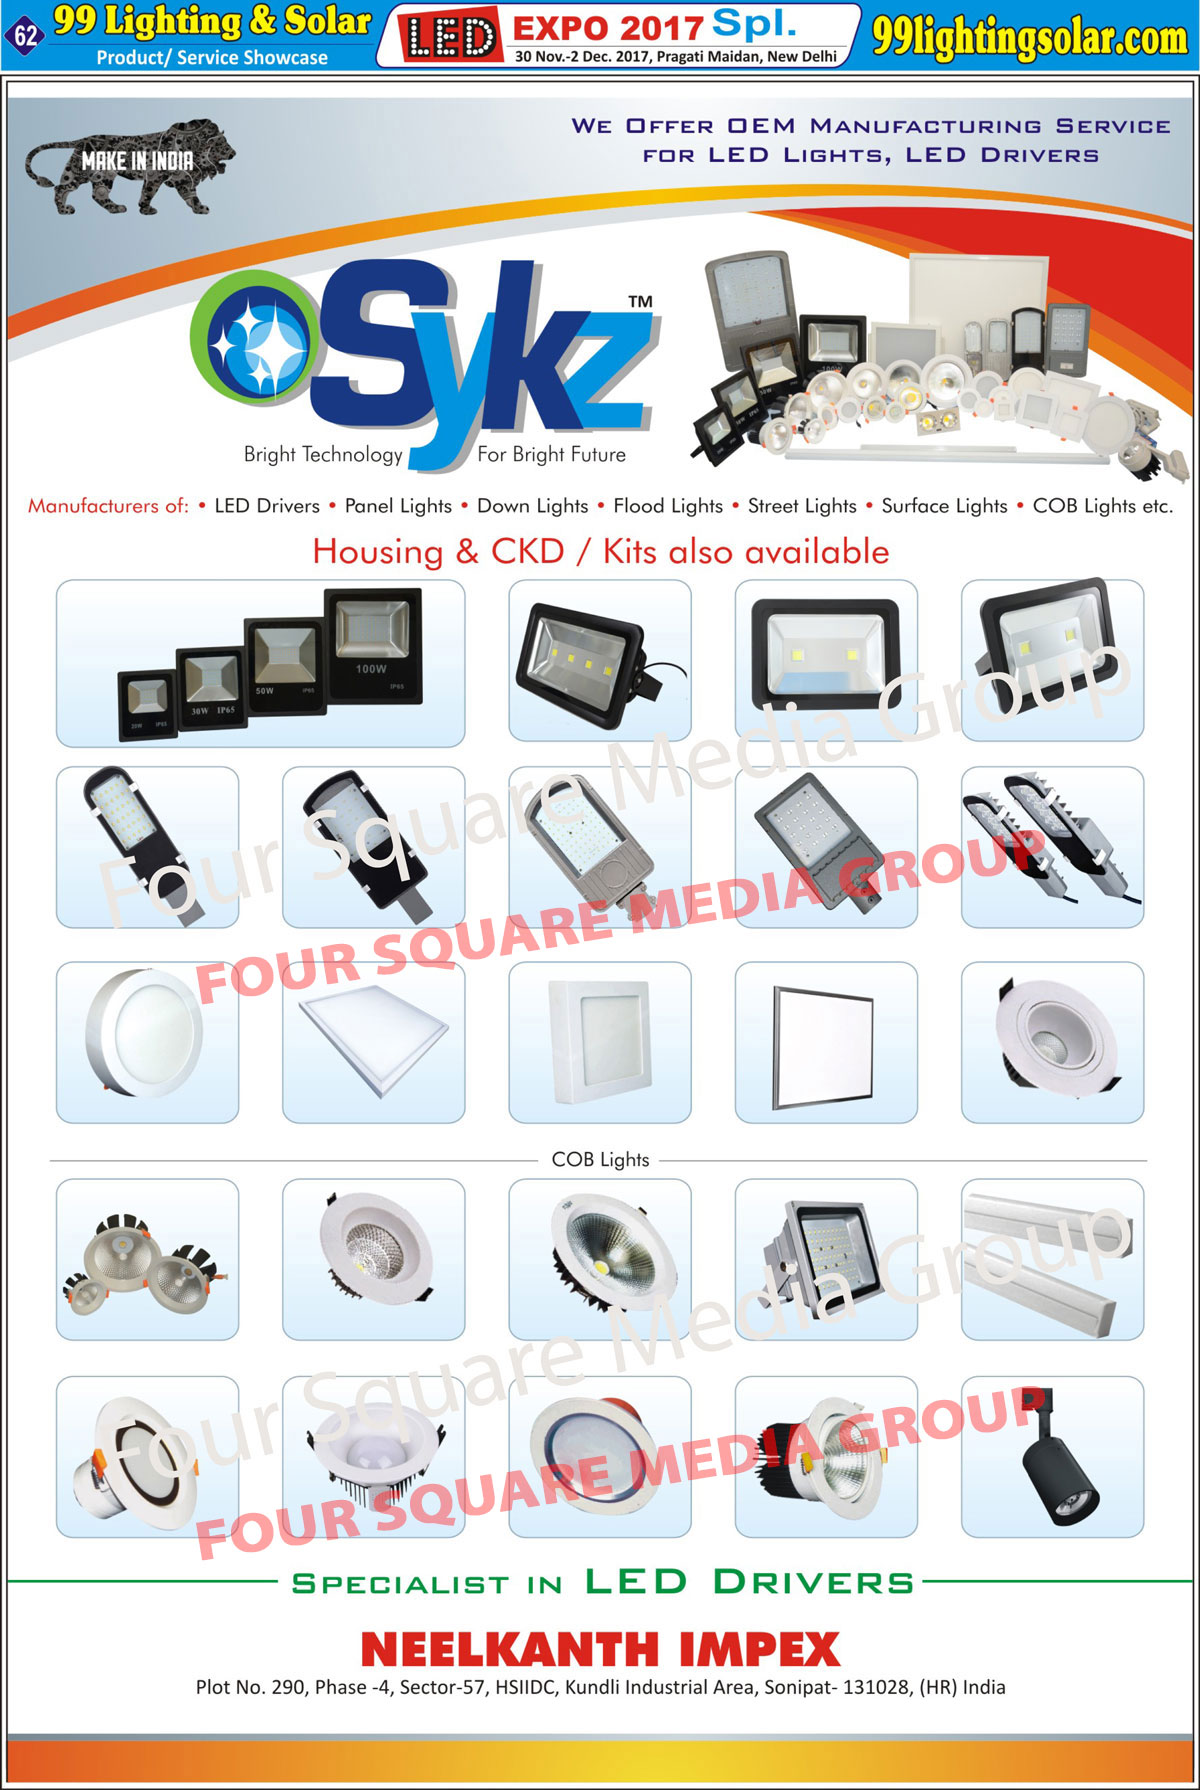 Led Lights, Led Panel Lights, Led Down Lights, Led Flood Lights, Led Street Lights, Led Surface Lights, Led COB Lights, Led Drivers